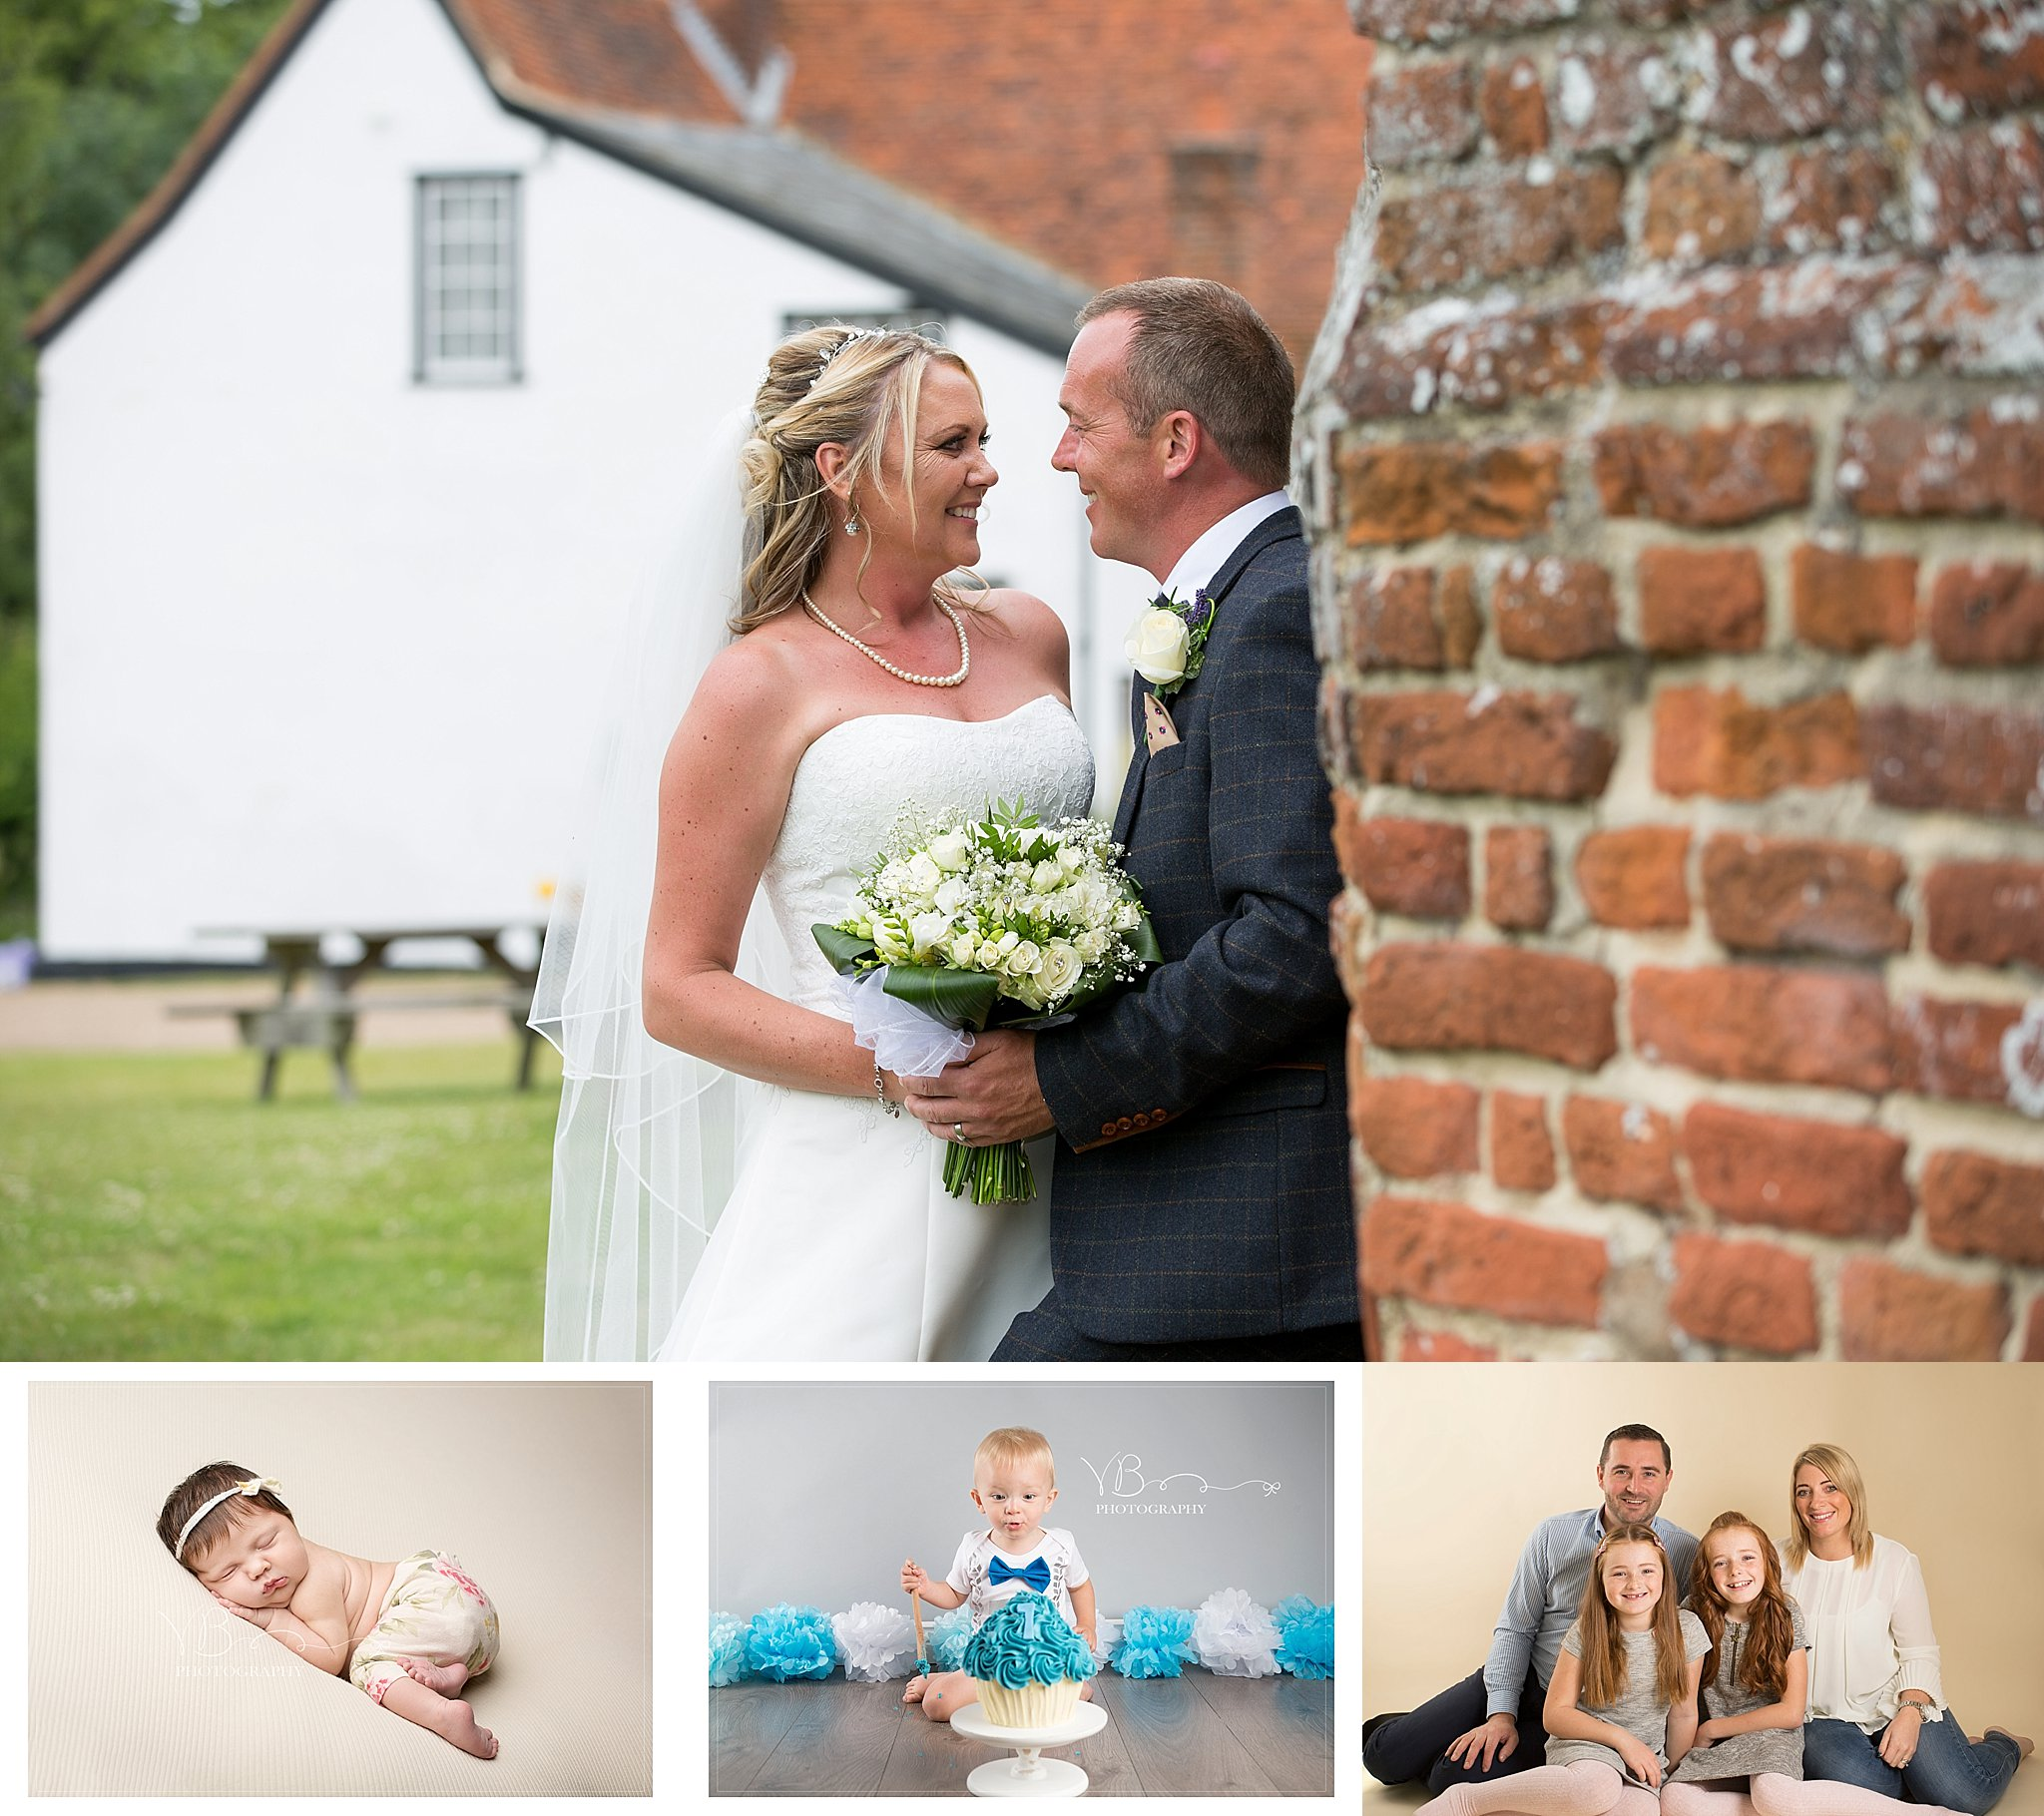 VB Photography - Newborn, Family & Wedding Photography